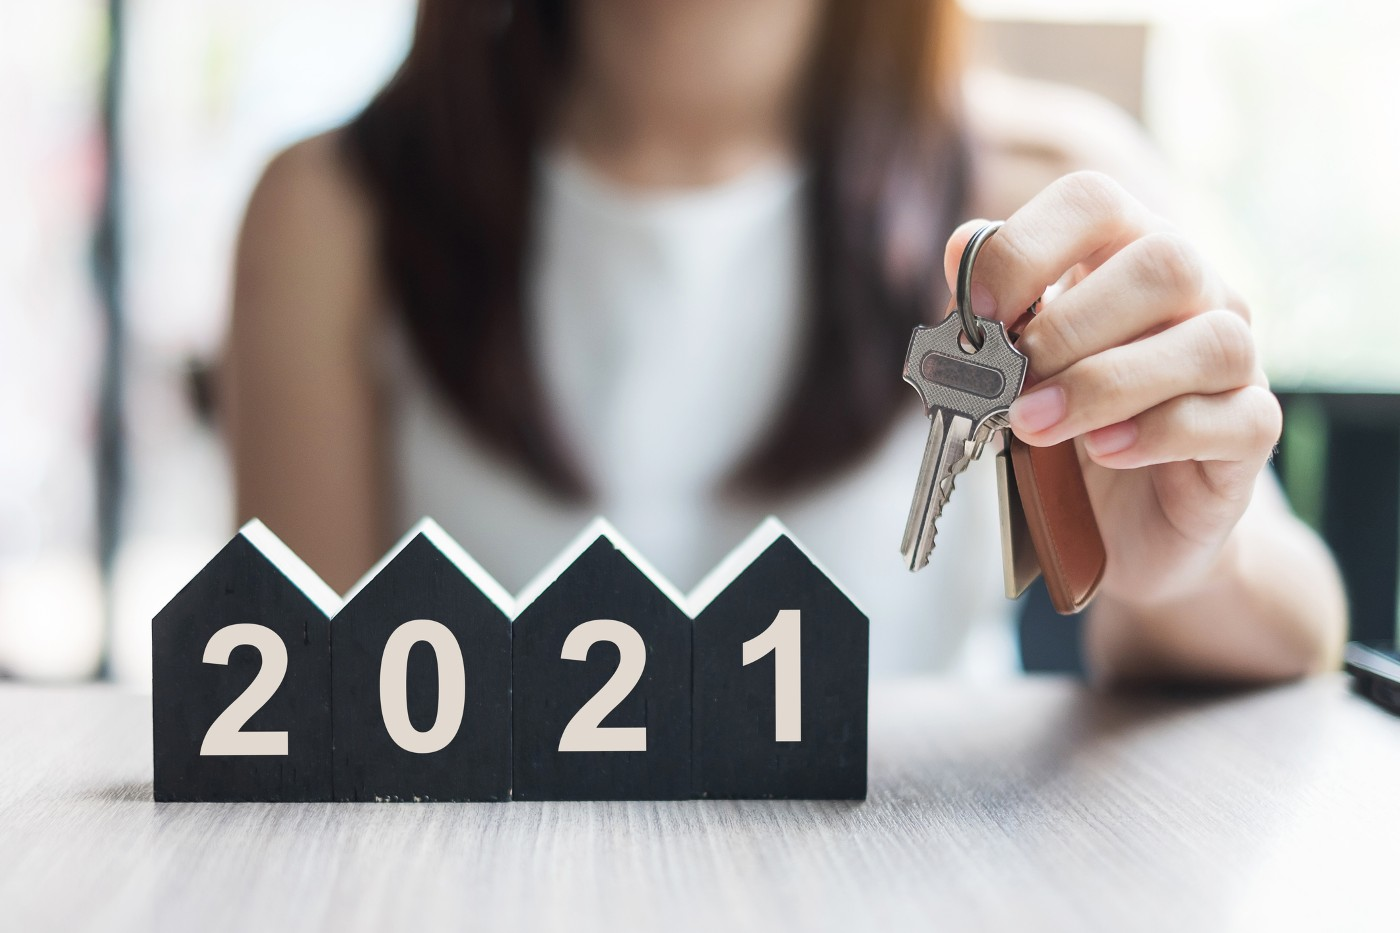 https://tickertapecdn.tdameritrade.com/assets/images/pages/md/Woman holding a house key next to a 2021 sign: Short-term investing for big expenses